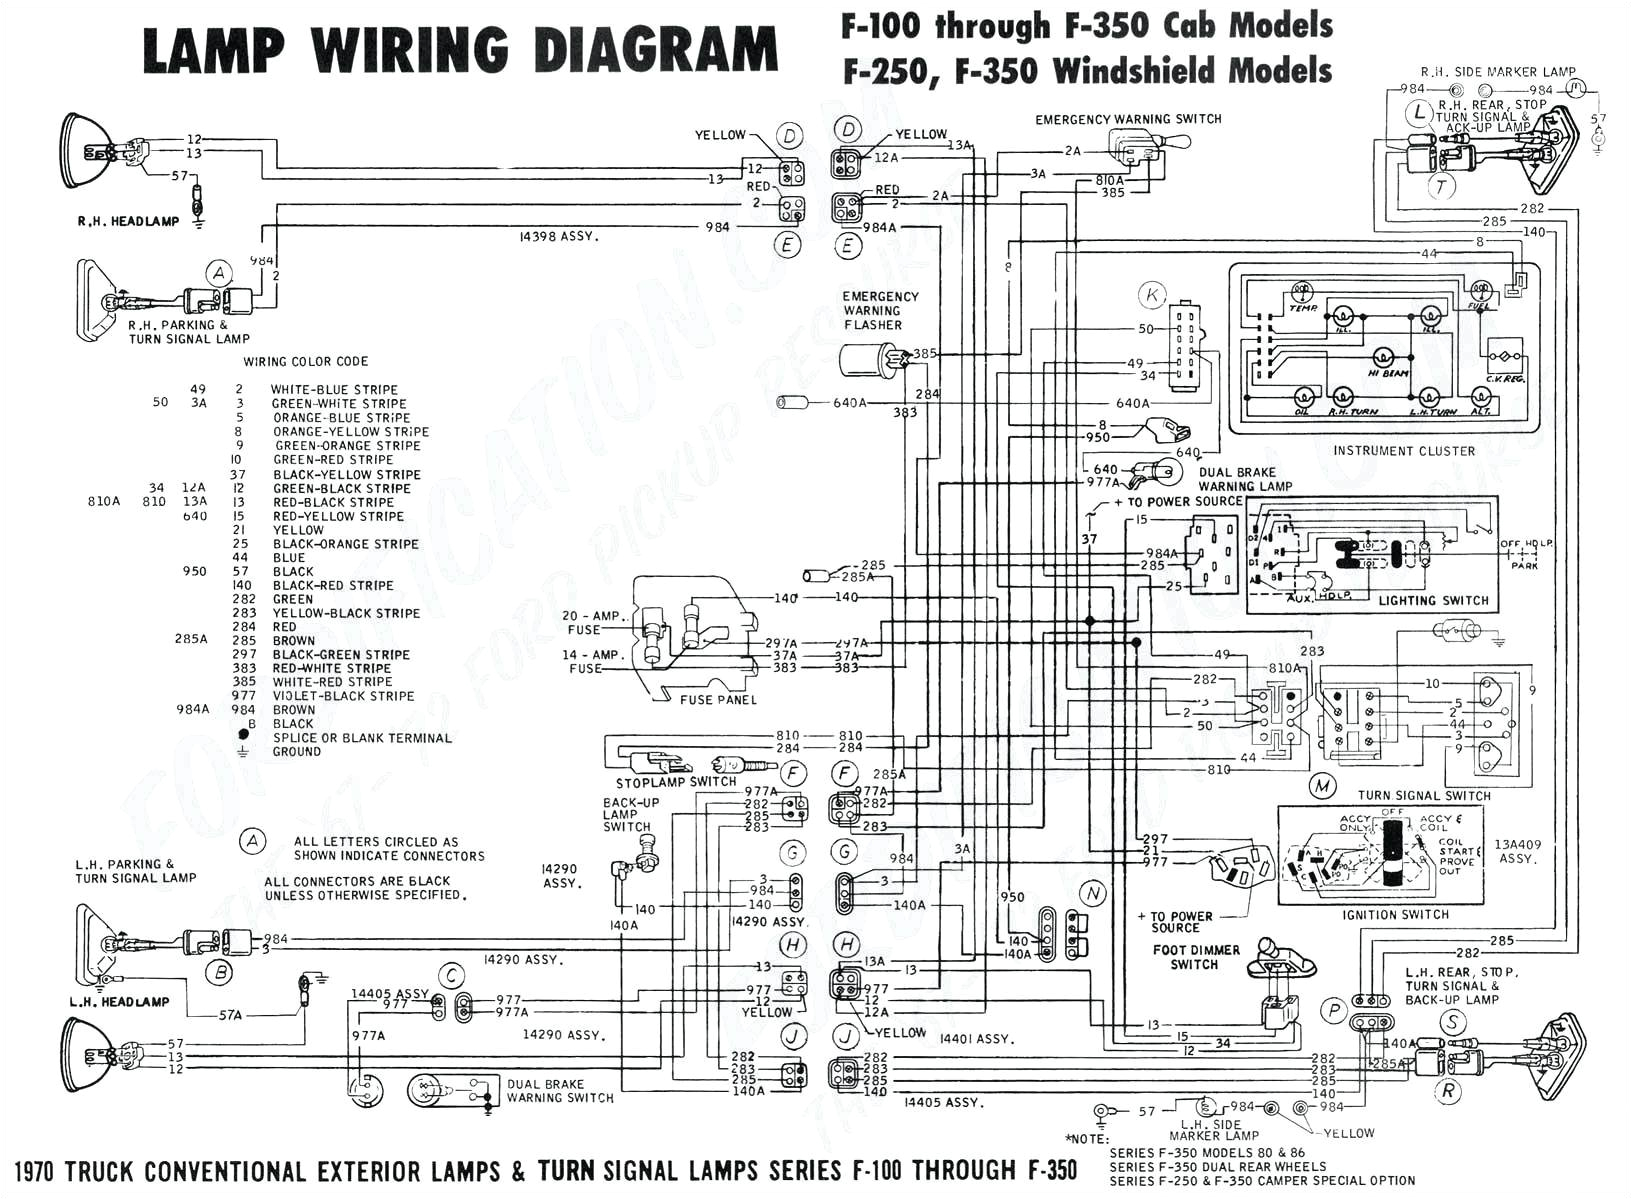 Motorcycle Hazard Lights Wiring Diagram Signal Flasher Wiring Diagram Wiring Diagram Technic